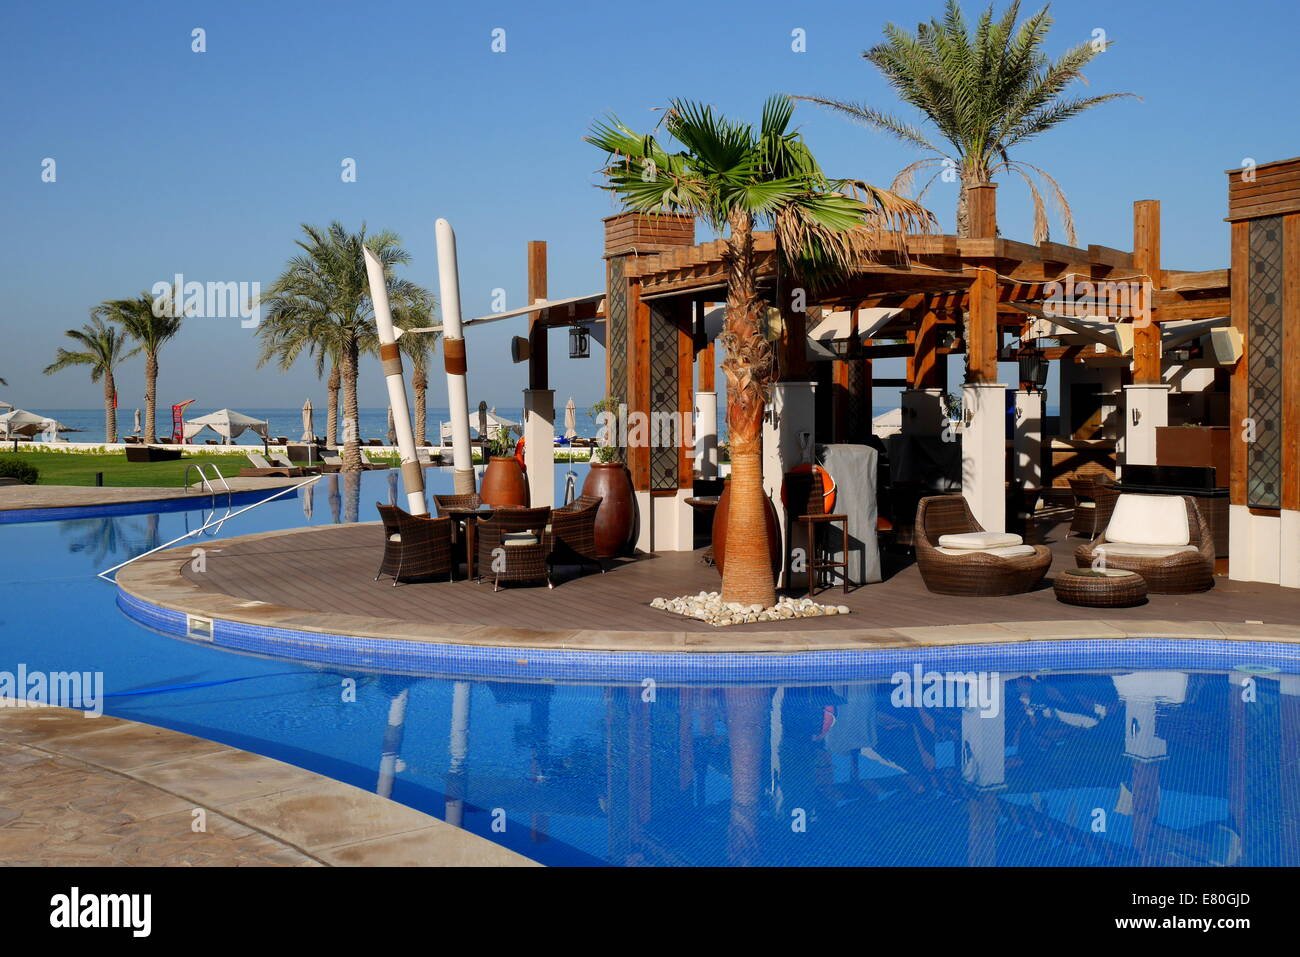 Pool Bar And Swimming Pool At The Beach Resort Of The Hotel Sofitel Stock Photo 73771781 Alamy